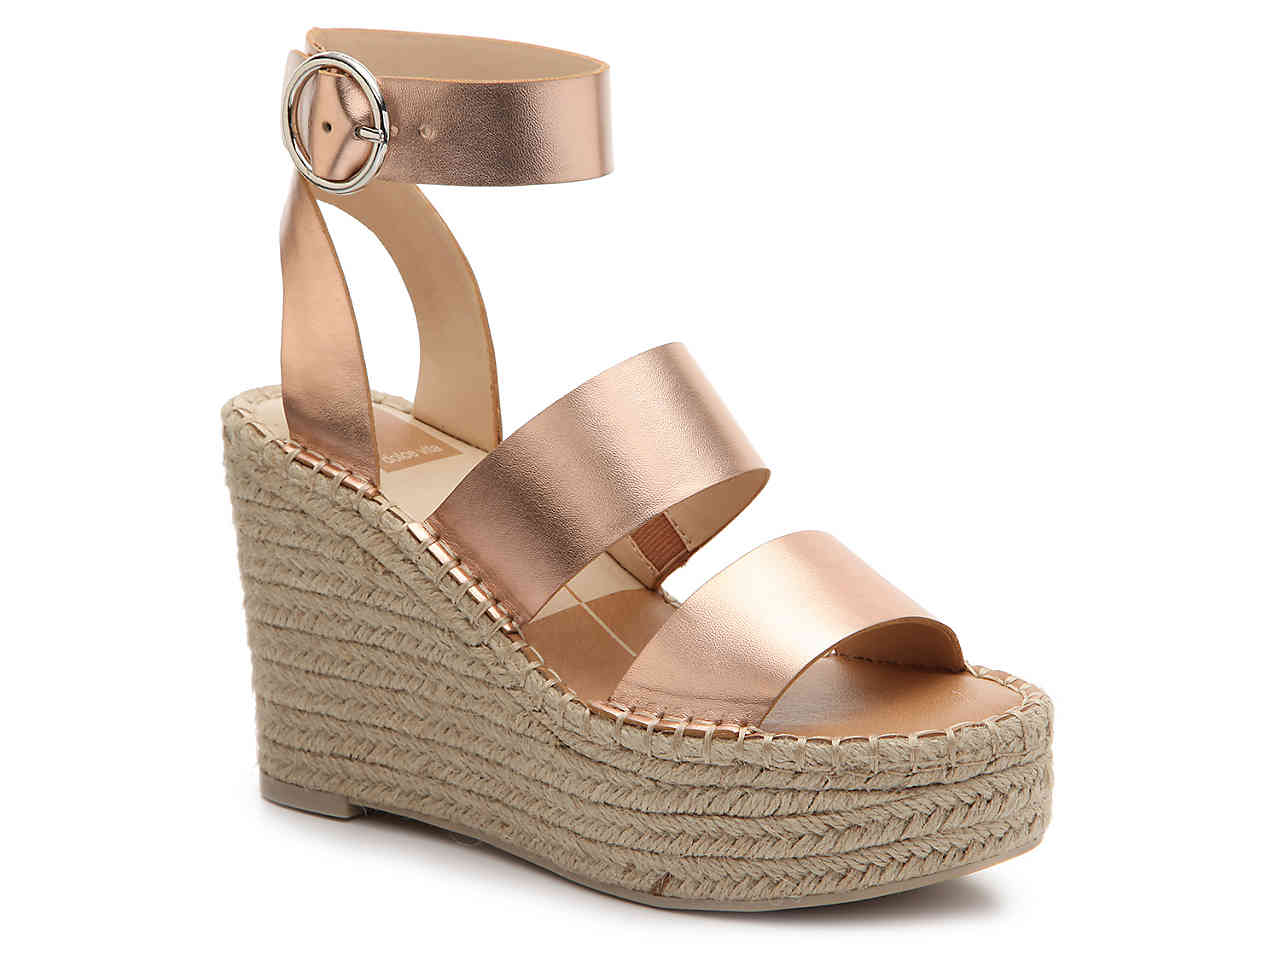 Rose gold is the hot color of the year! Check out these beauties from  DSW  $70